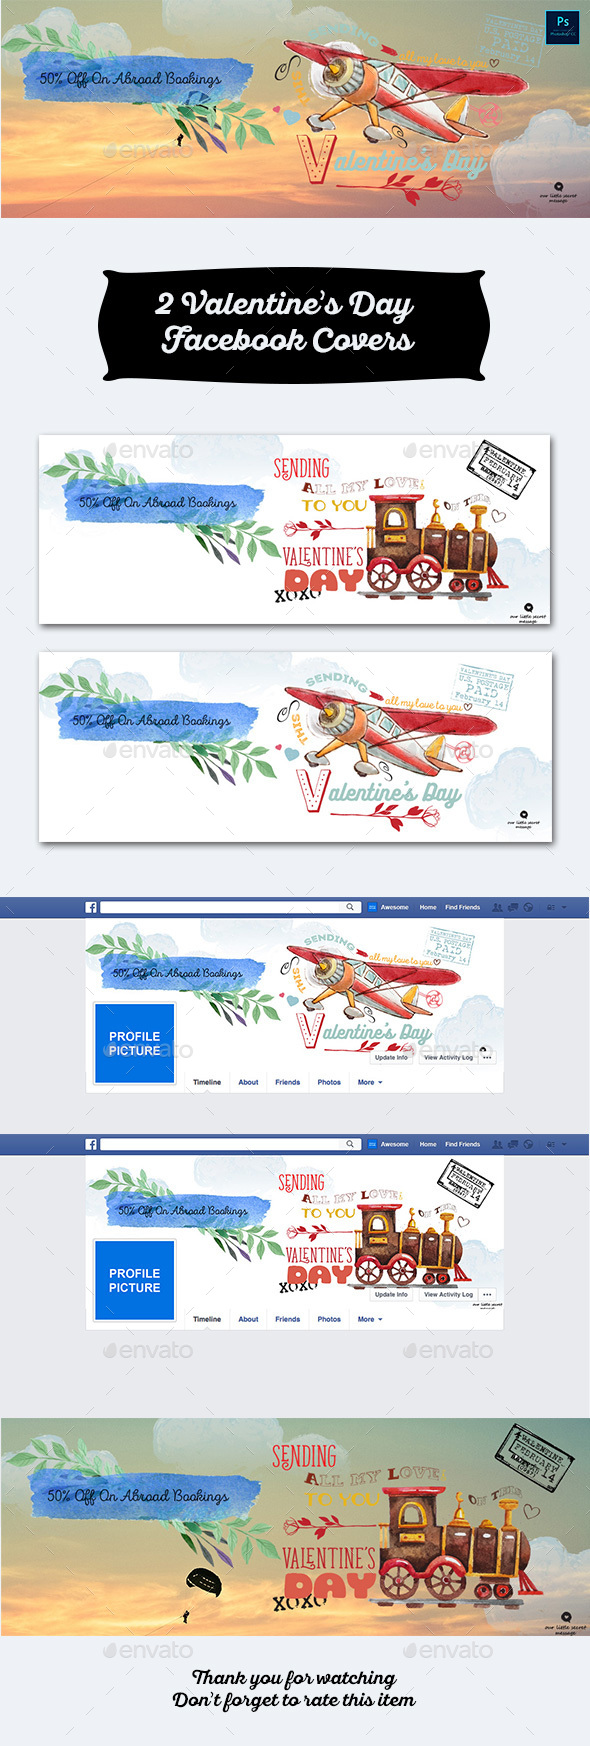 2 Valentine's Day Facebook Covers - Facebook Timeline Covers Social Media